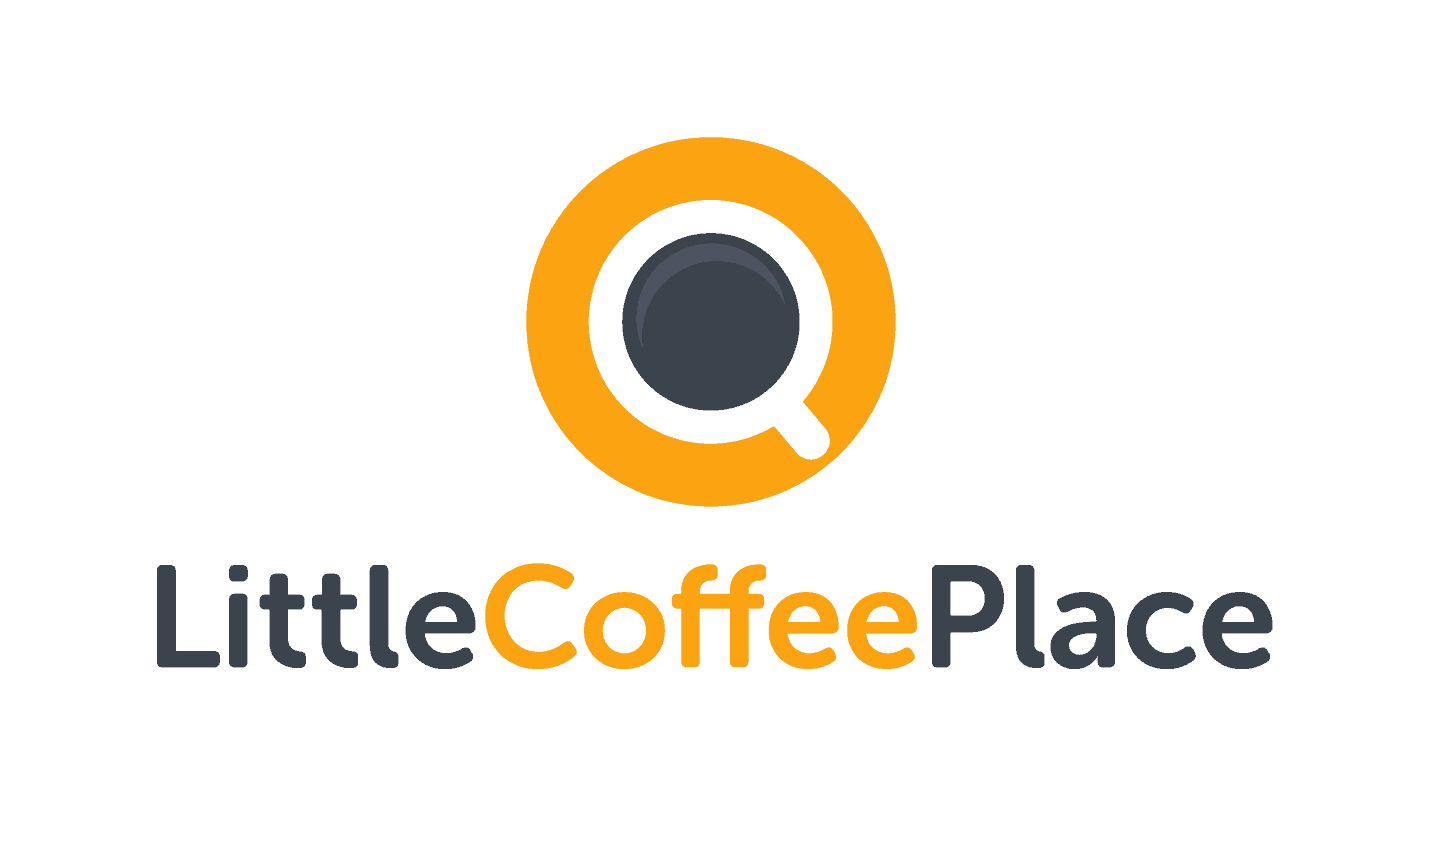 Little Coffee Place